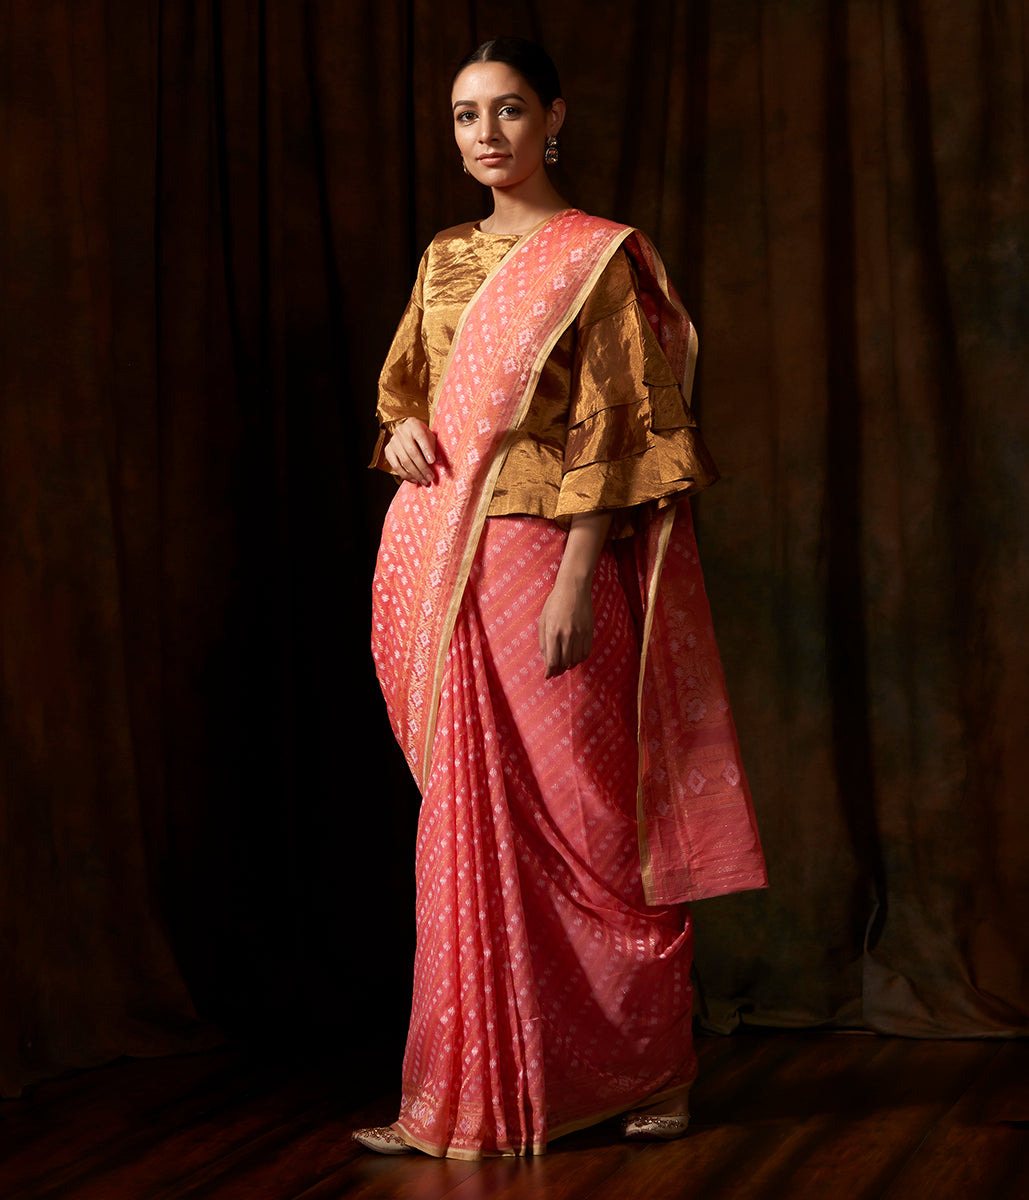 Handwoven cotton banarasi in peach with jamdani neelambari weave